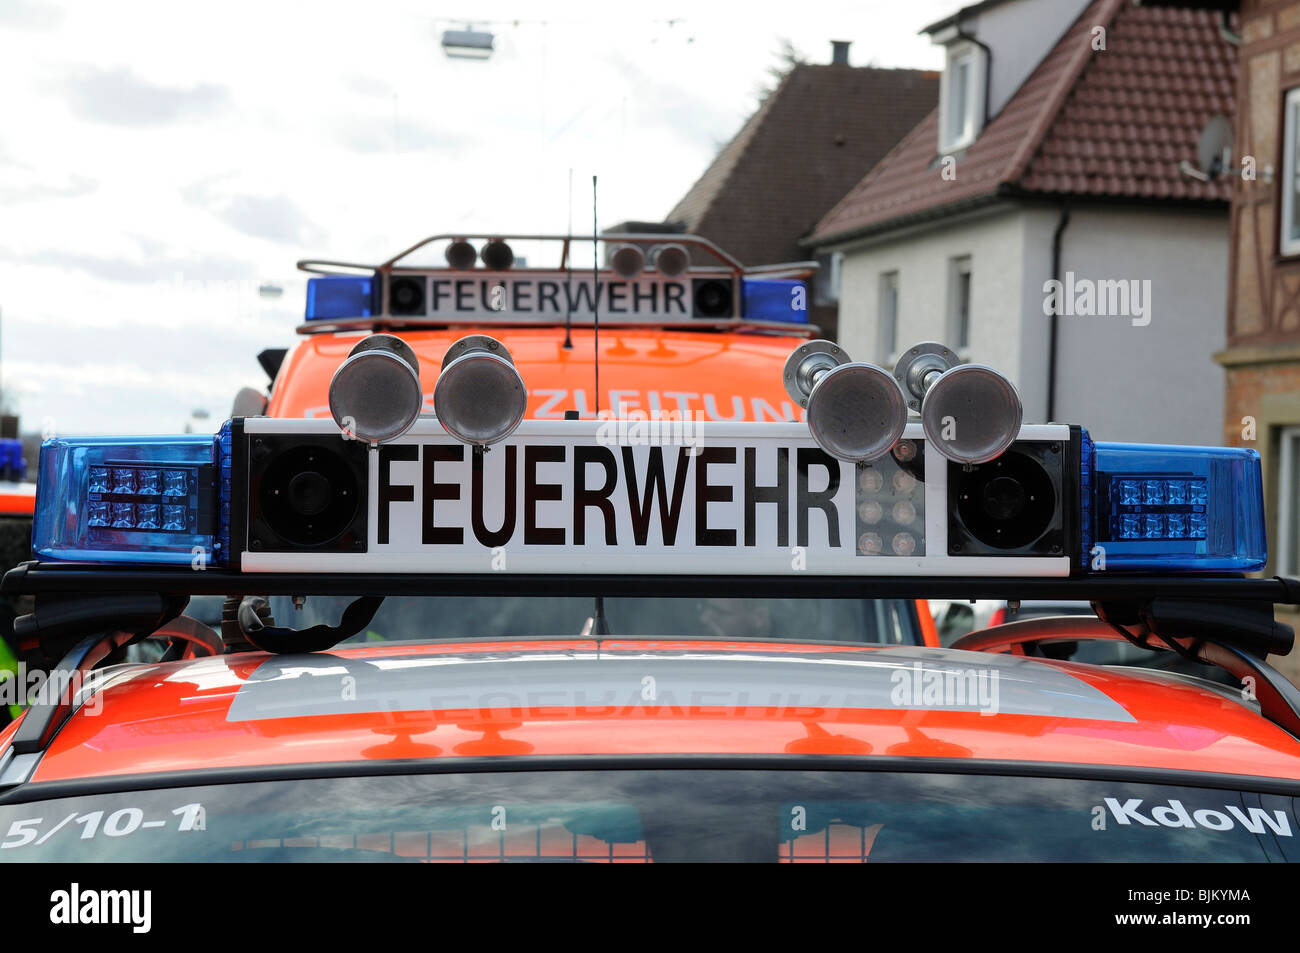 Fire brigade signalling system with blue lights and lettering 'Feuerwehr' on a fire-engine, Stuttgart, Baden - Stock Image